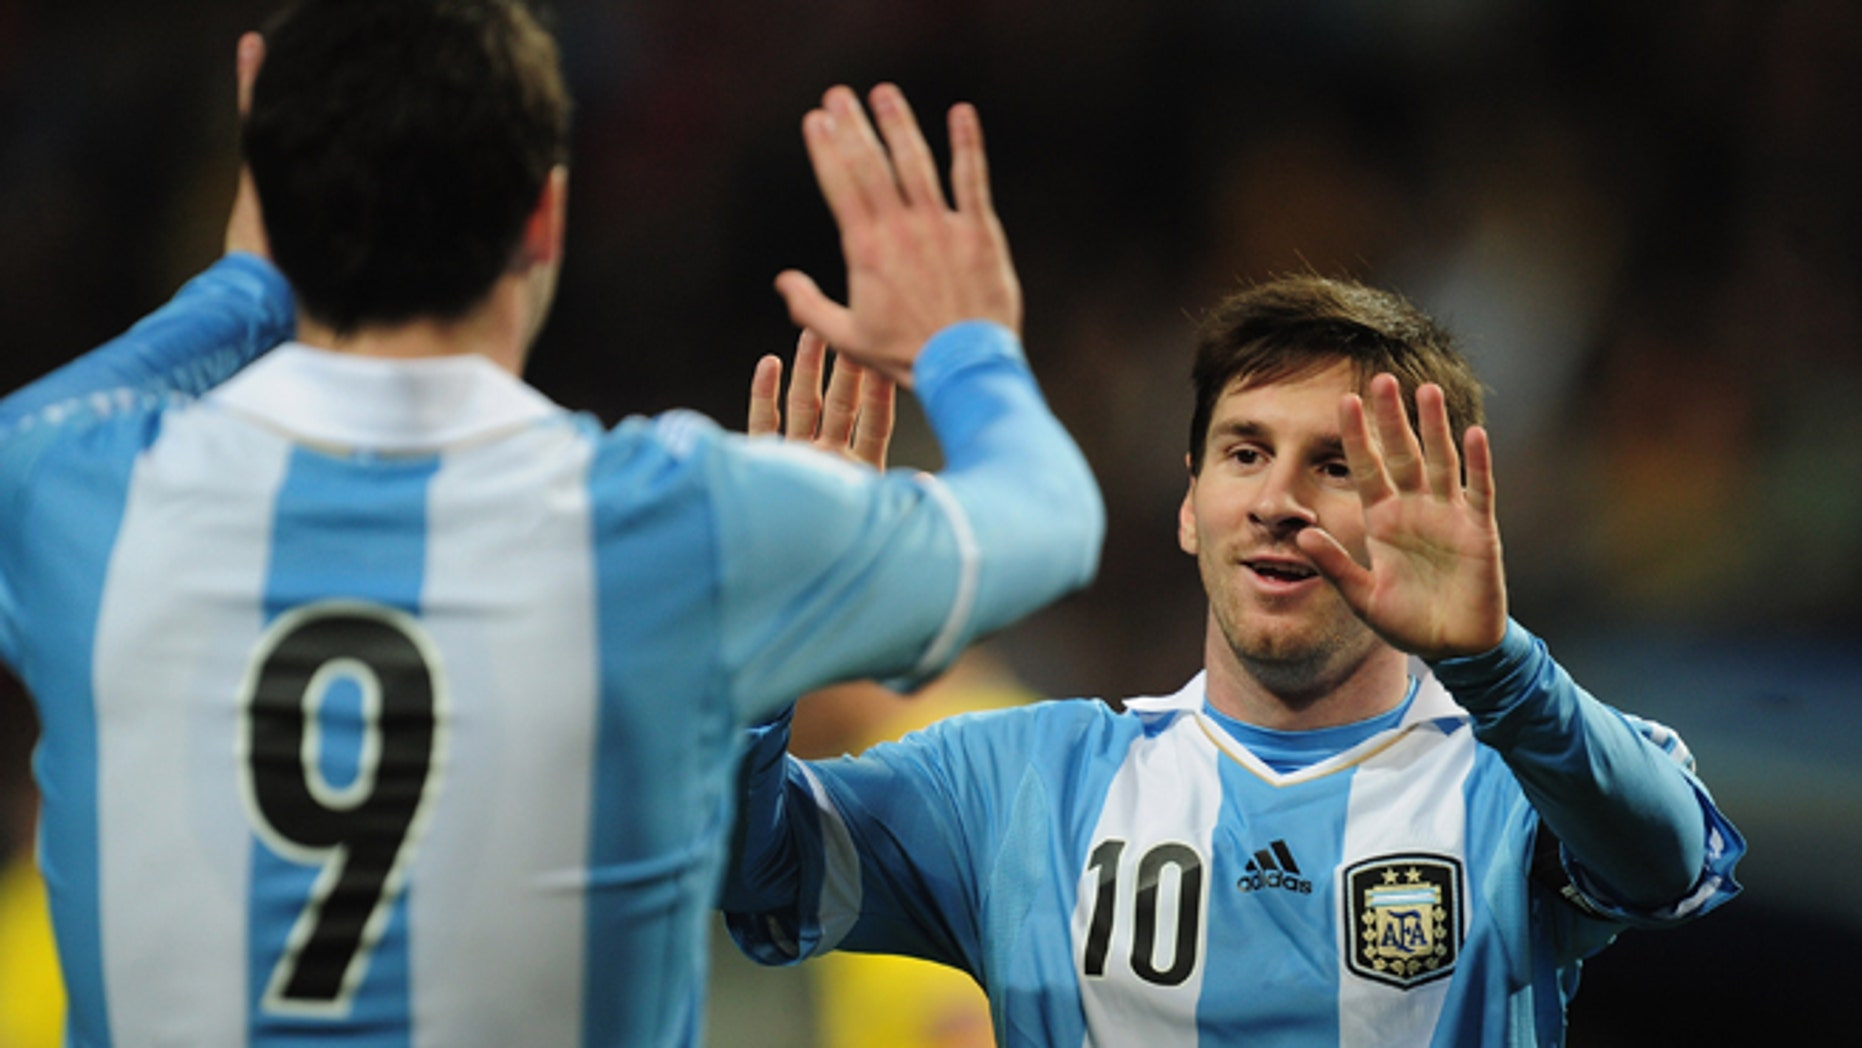 STOCKHOLM, SWEDEN - FEBRUARY 06:  Lionel Messi of Argentina in action during the International Friendly match between Sweden and Argentina at the Friends Arena on February 6, 2013 in Stockholm, Sweden.  (Photo by Jamie McDonald/Getty Images)